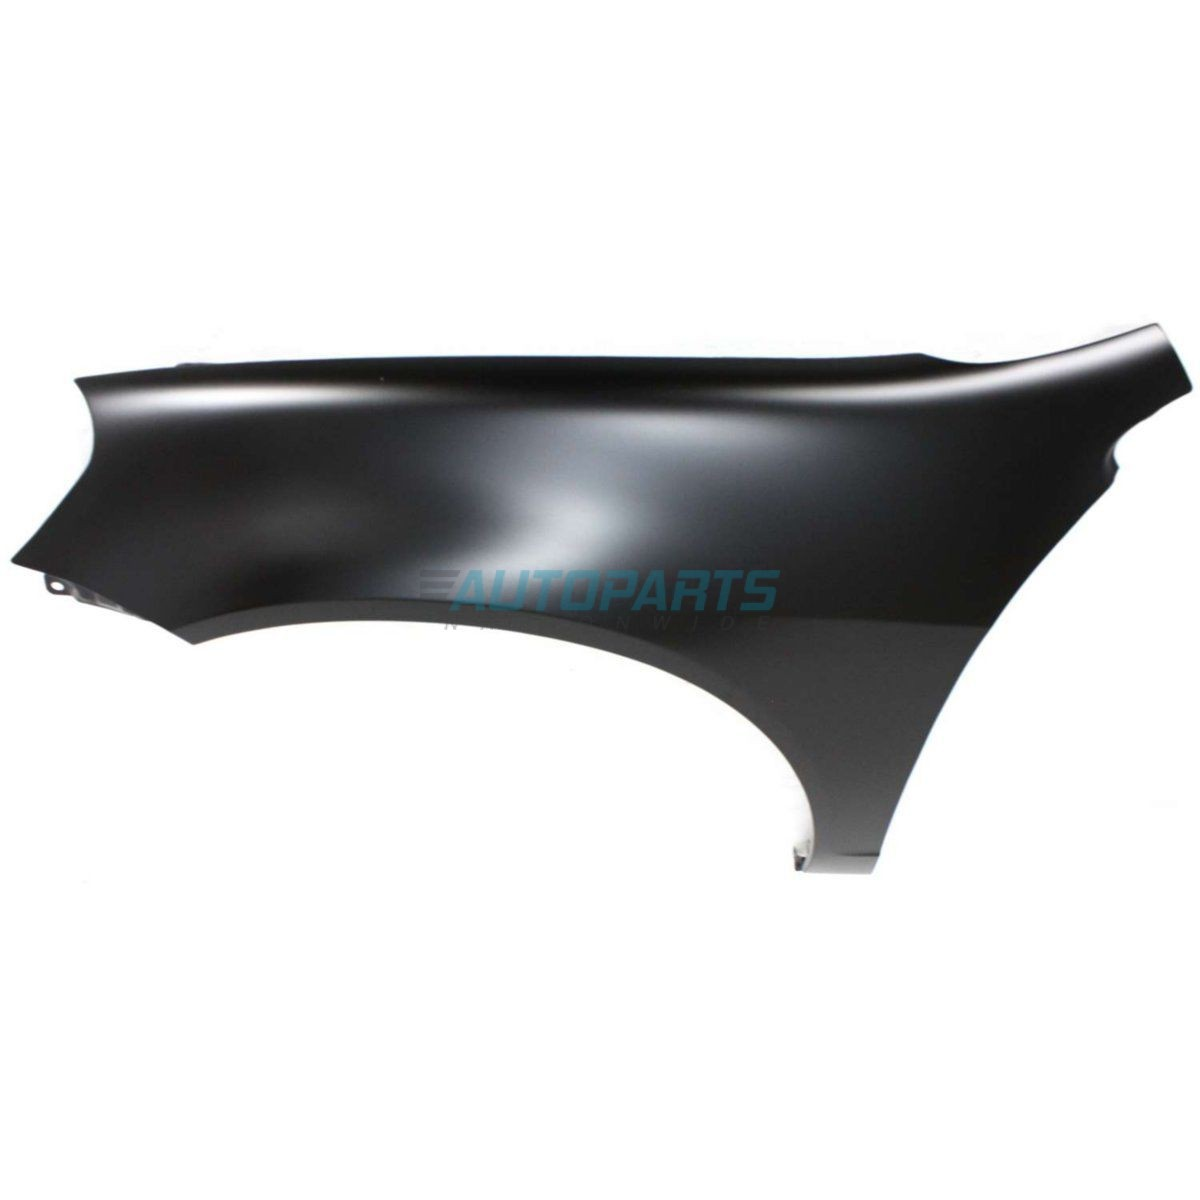 Acura Rsx Fender: NEW FRONT LEFT FENDER FITS 2002-2006 ACURA RSX AC1240113